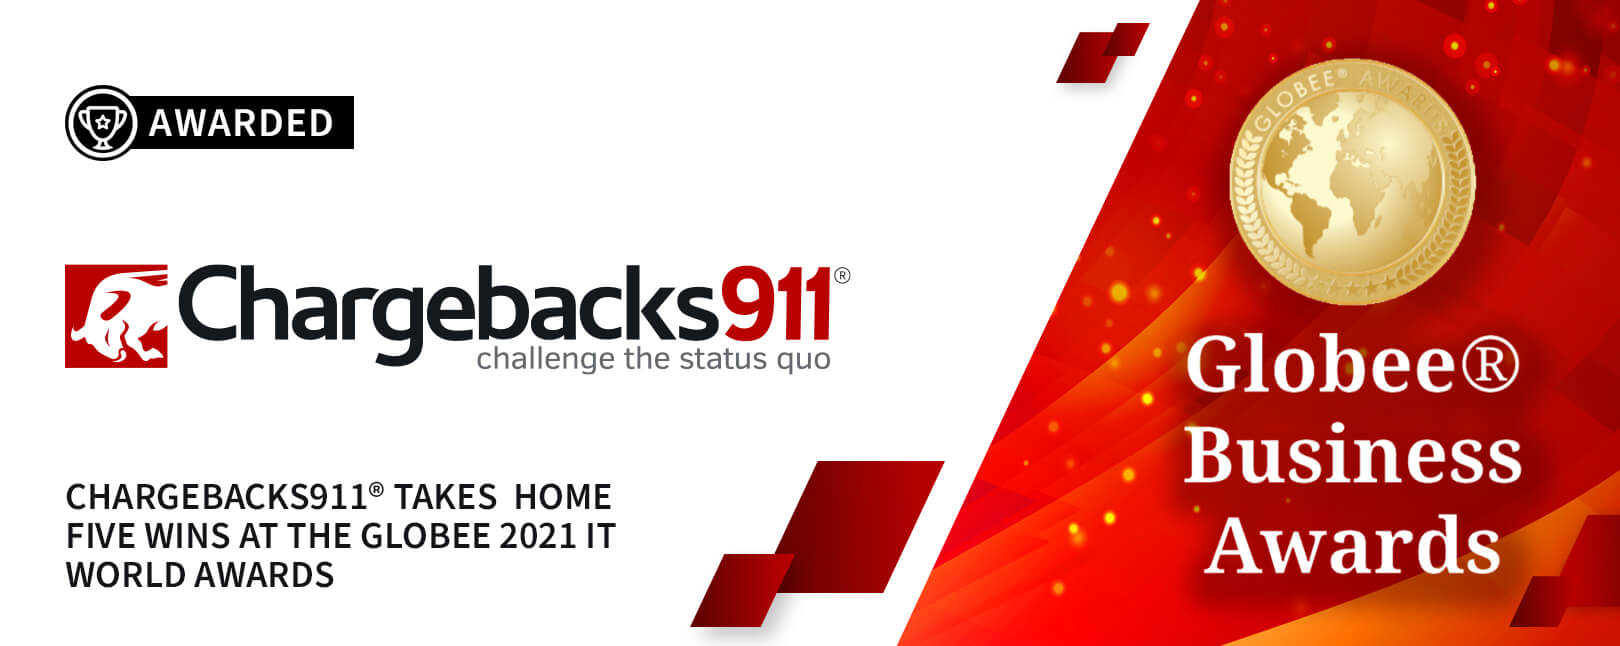 Chargebacks911® Win 5 New GLOBEE Award Titles for 2021!